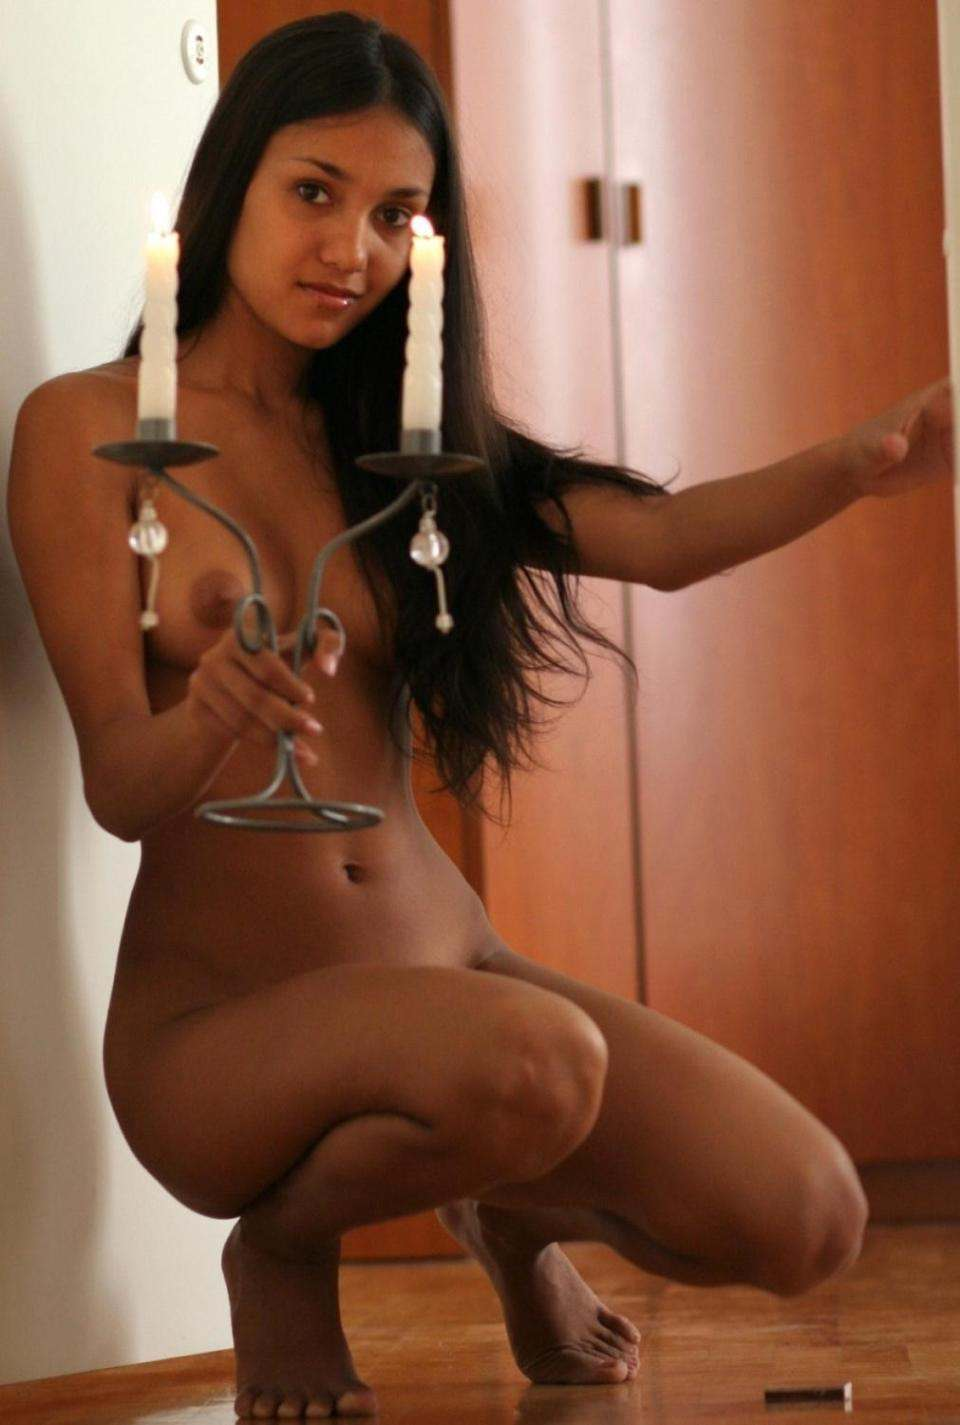 Beautiful Indian Young Girls Naked Body Pics-1525